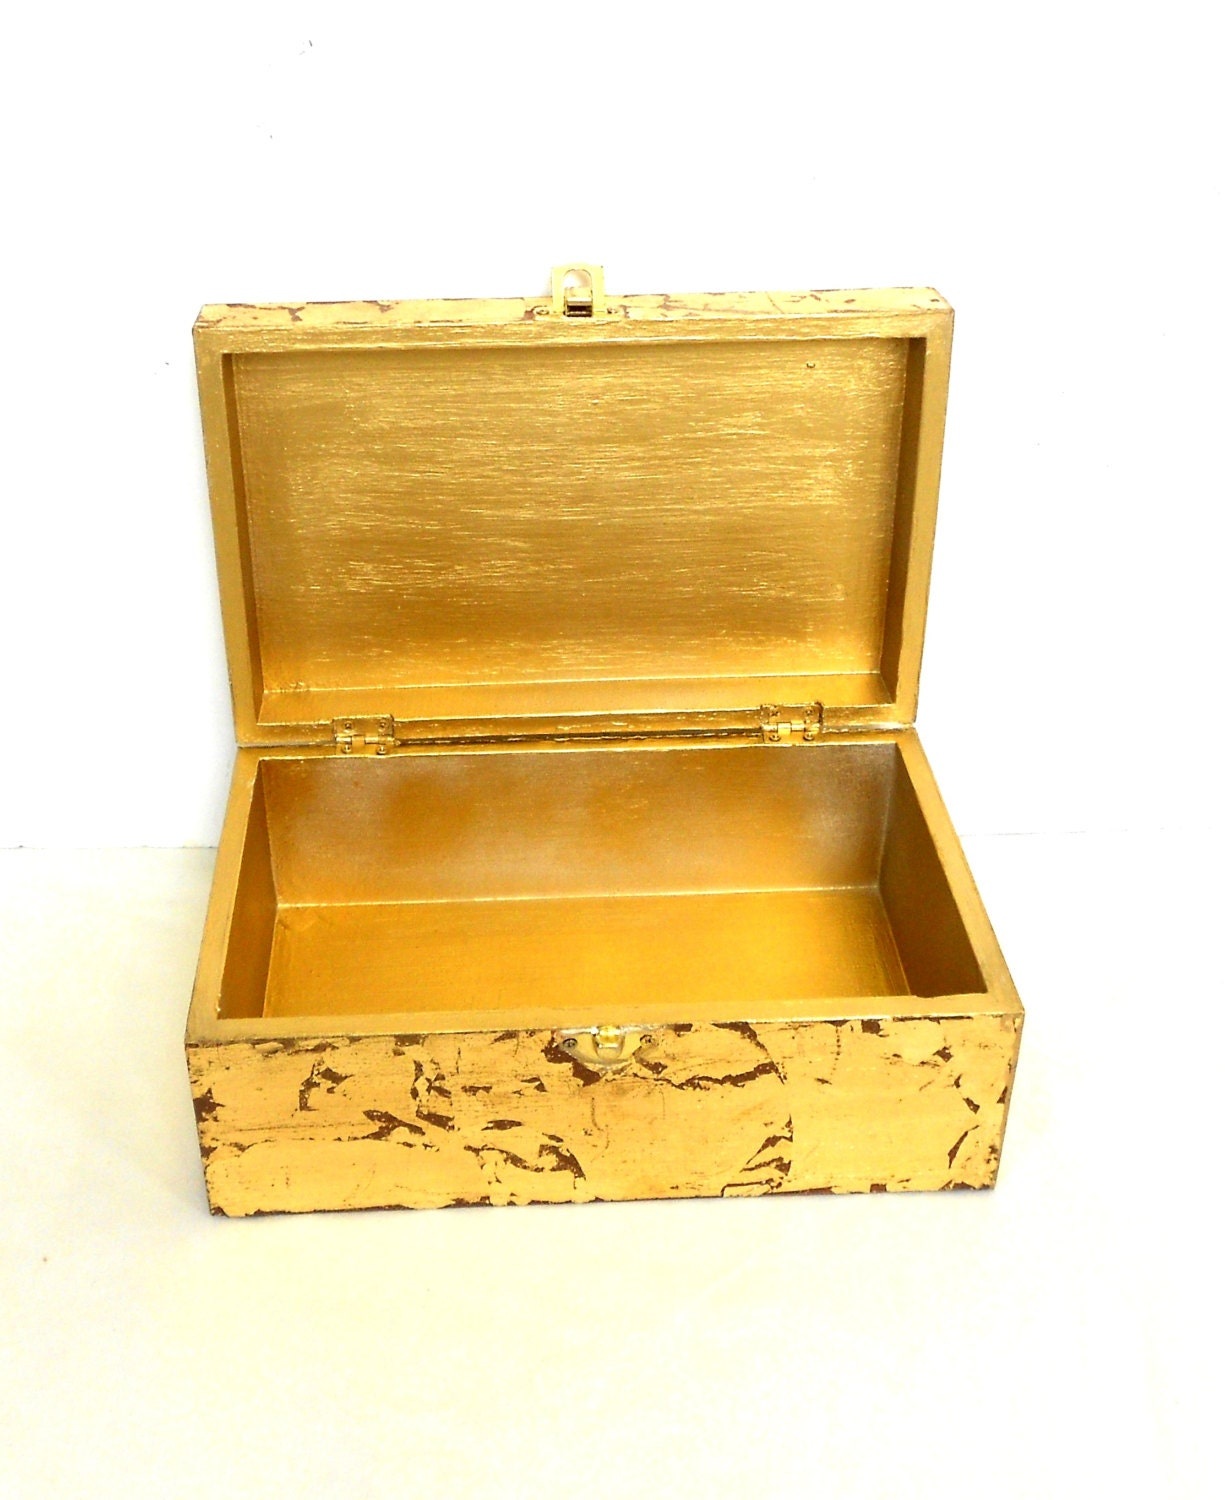 How To Make A Decorative Wooden Box: Gold Leaf Wooden Box Vintage Finishing Box Decorative Box